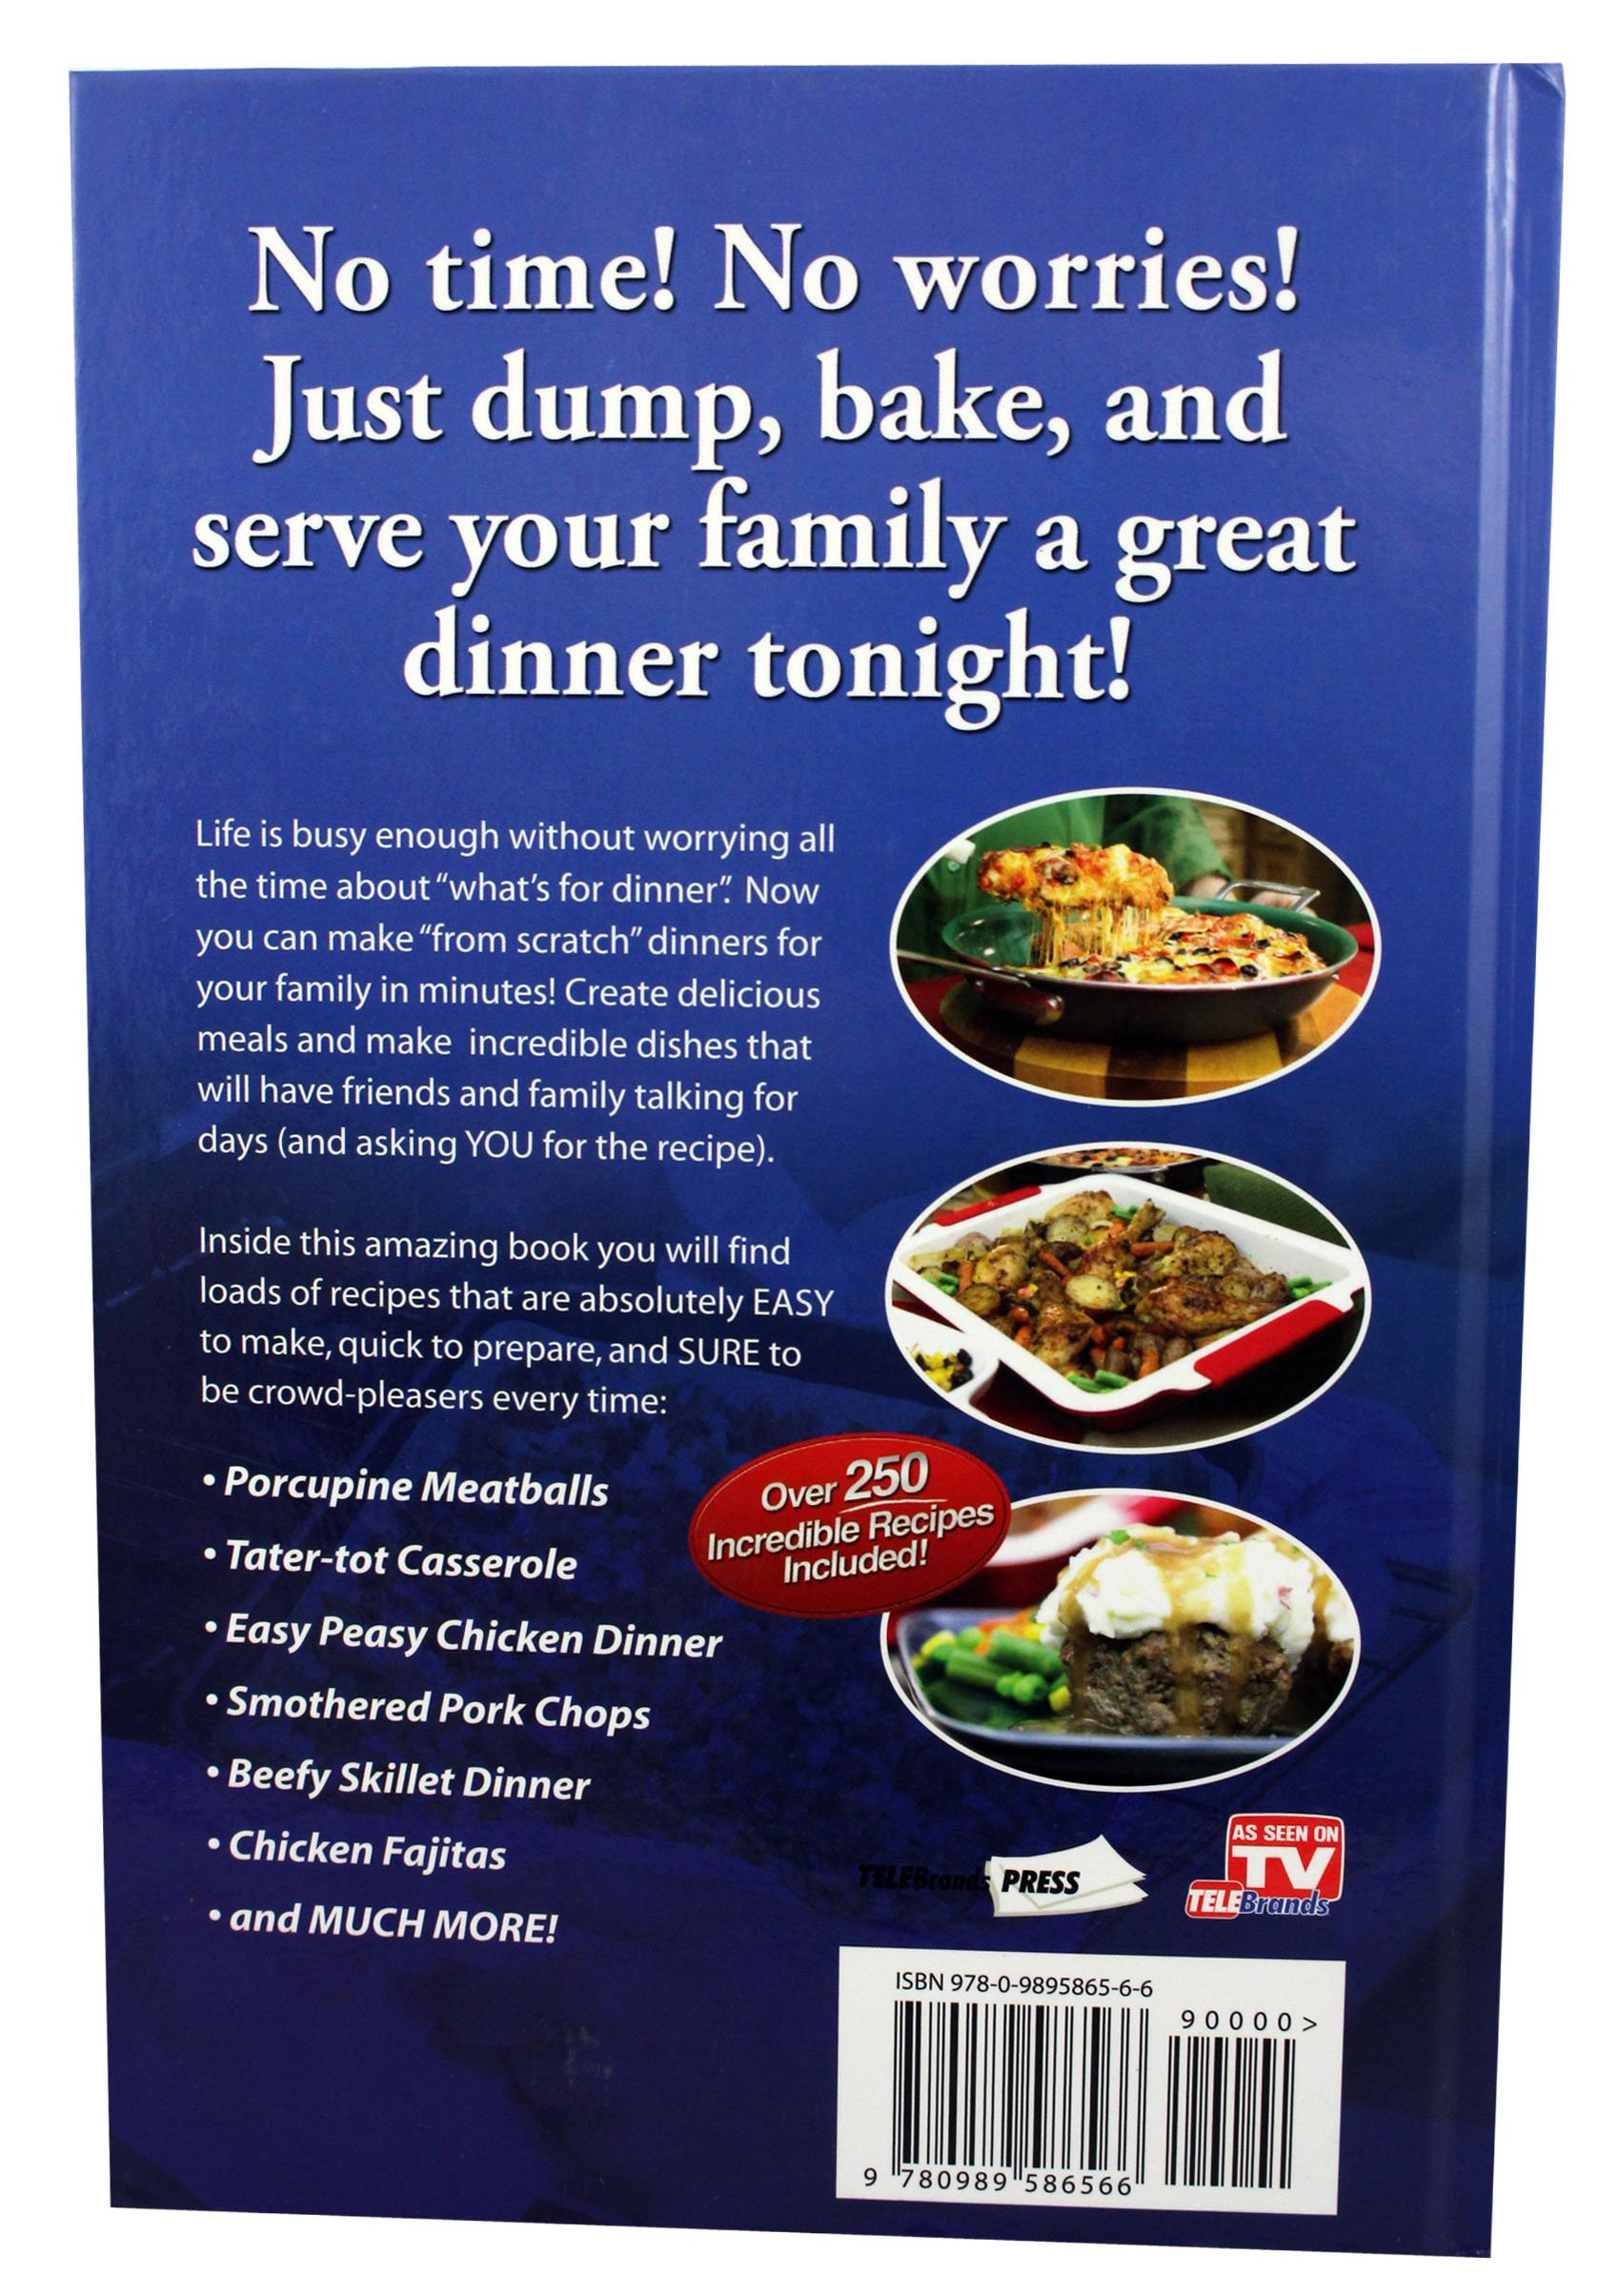 Dump dinners quick and easy dinner recipes by cathy mitchell cathy dump dinners quick and easy dinner recipes by cathy mitchell cathy mitchell 9780989586566 amazon books forumfinder Image collections